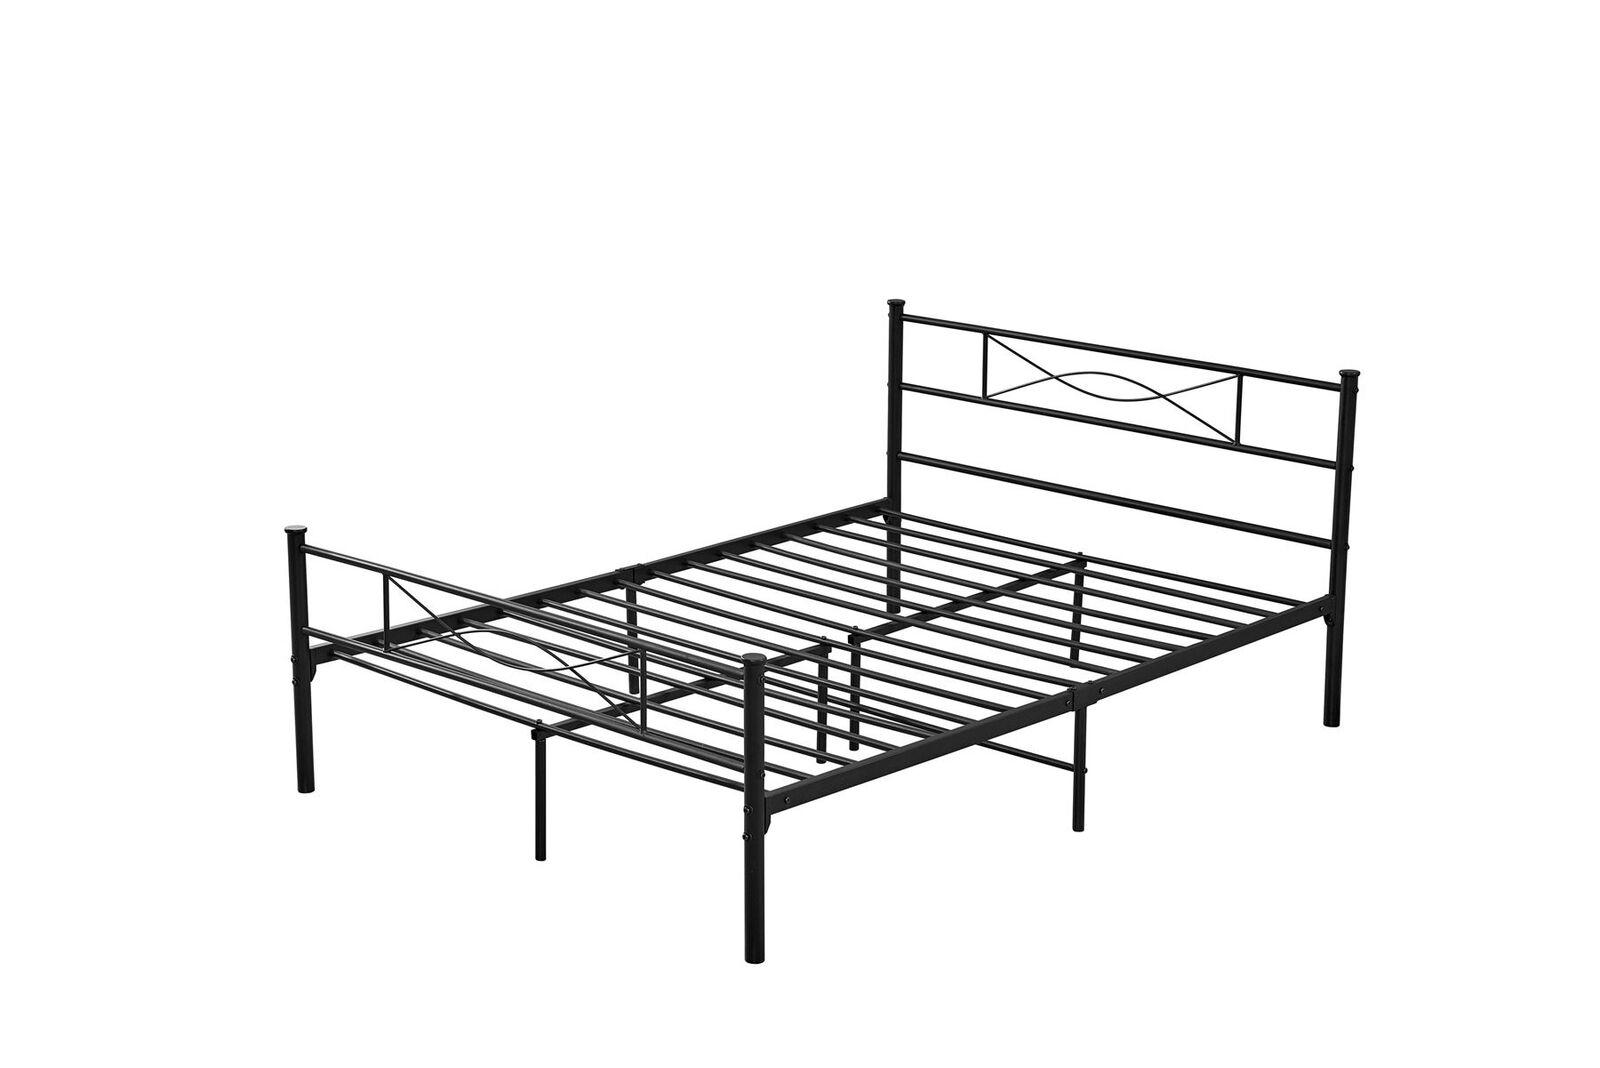 Solid Metal Bed Single Double King Frame Kitchenscraft